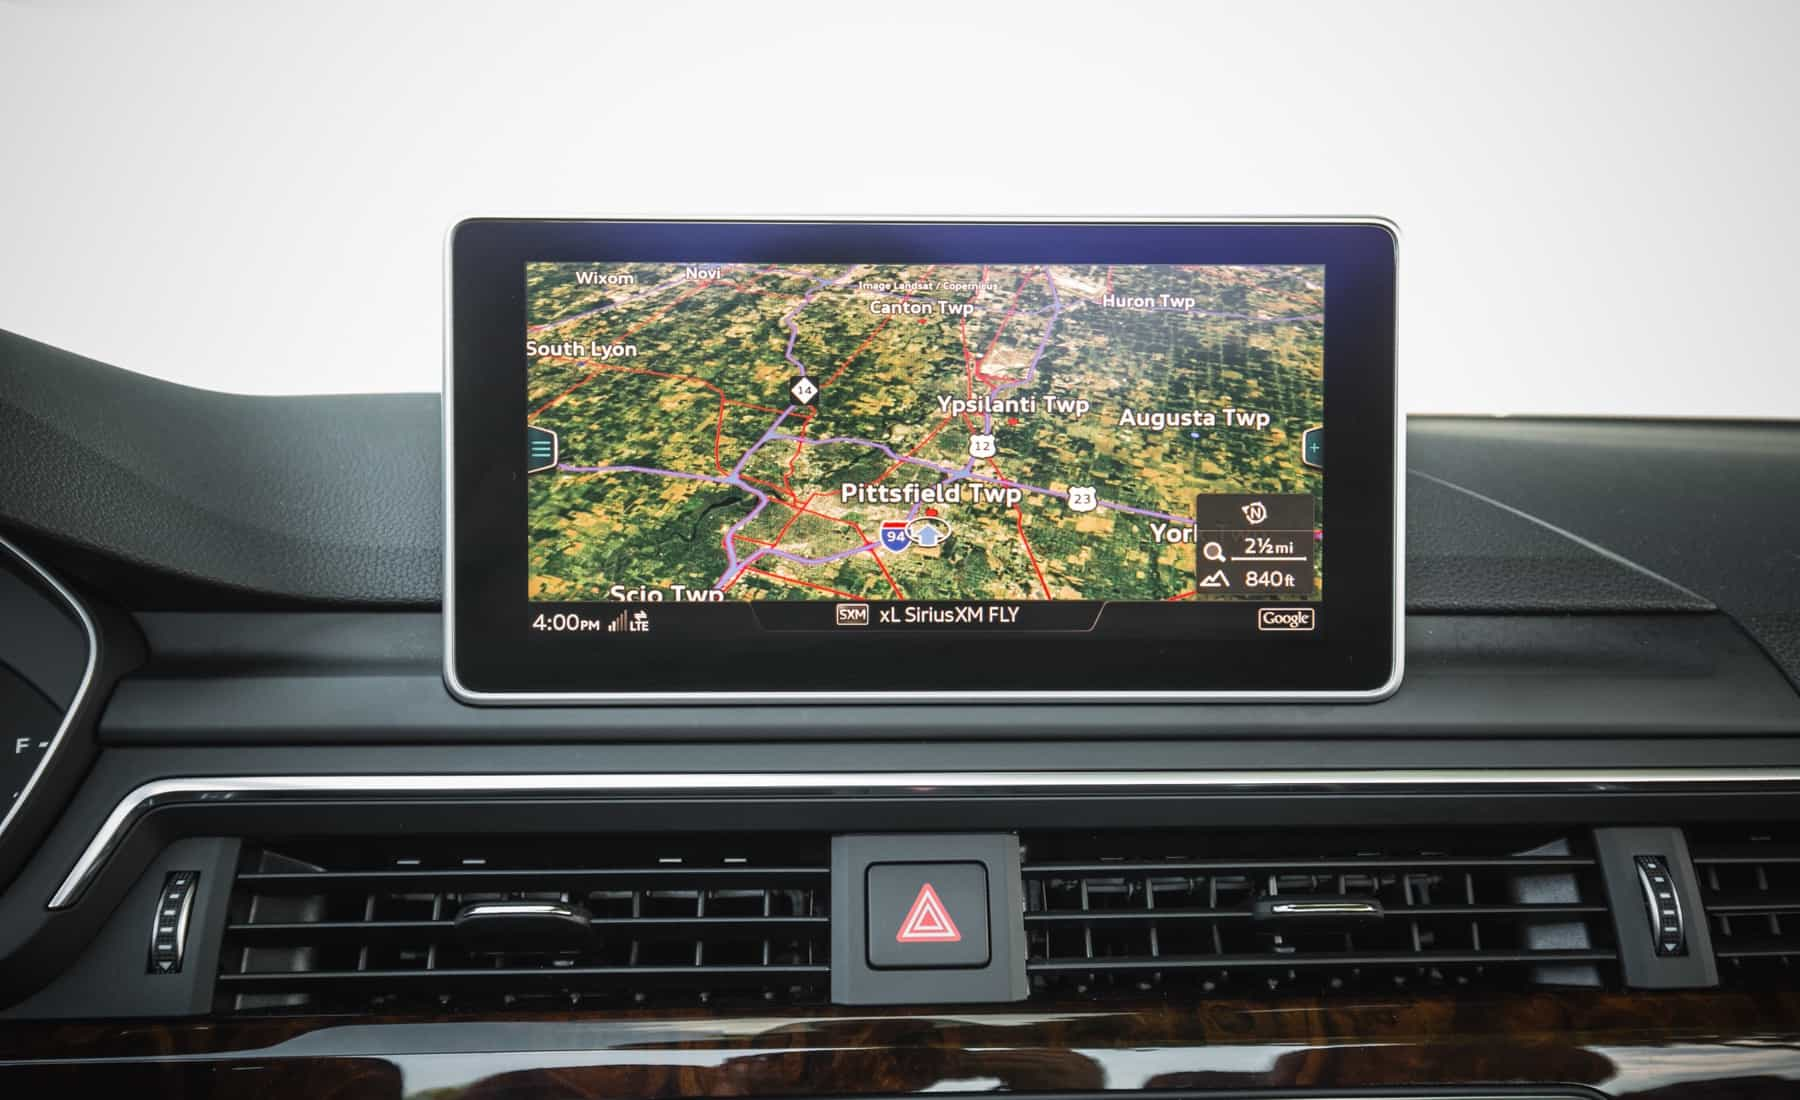 2018 Audi A5 Cabriolet Interior View GPS Navigation Screen (Photo 32 of 45)